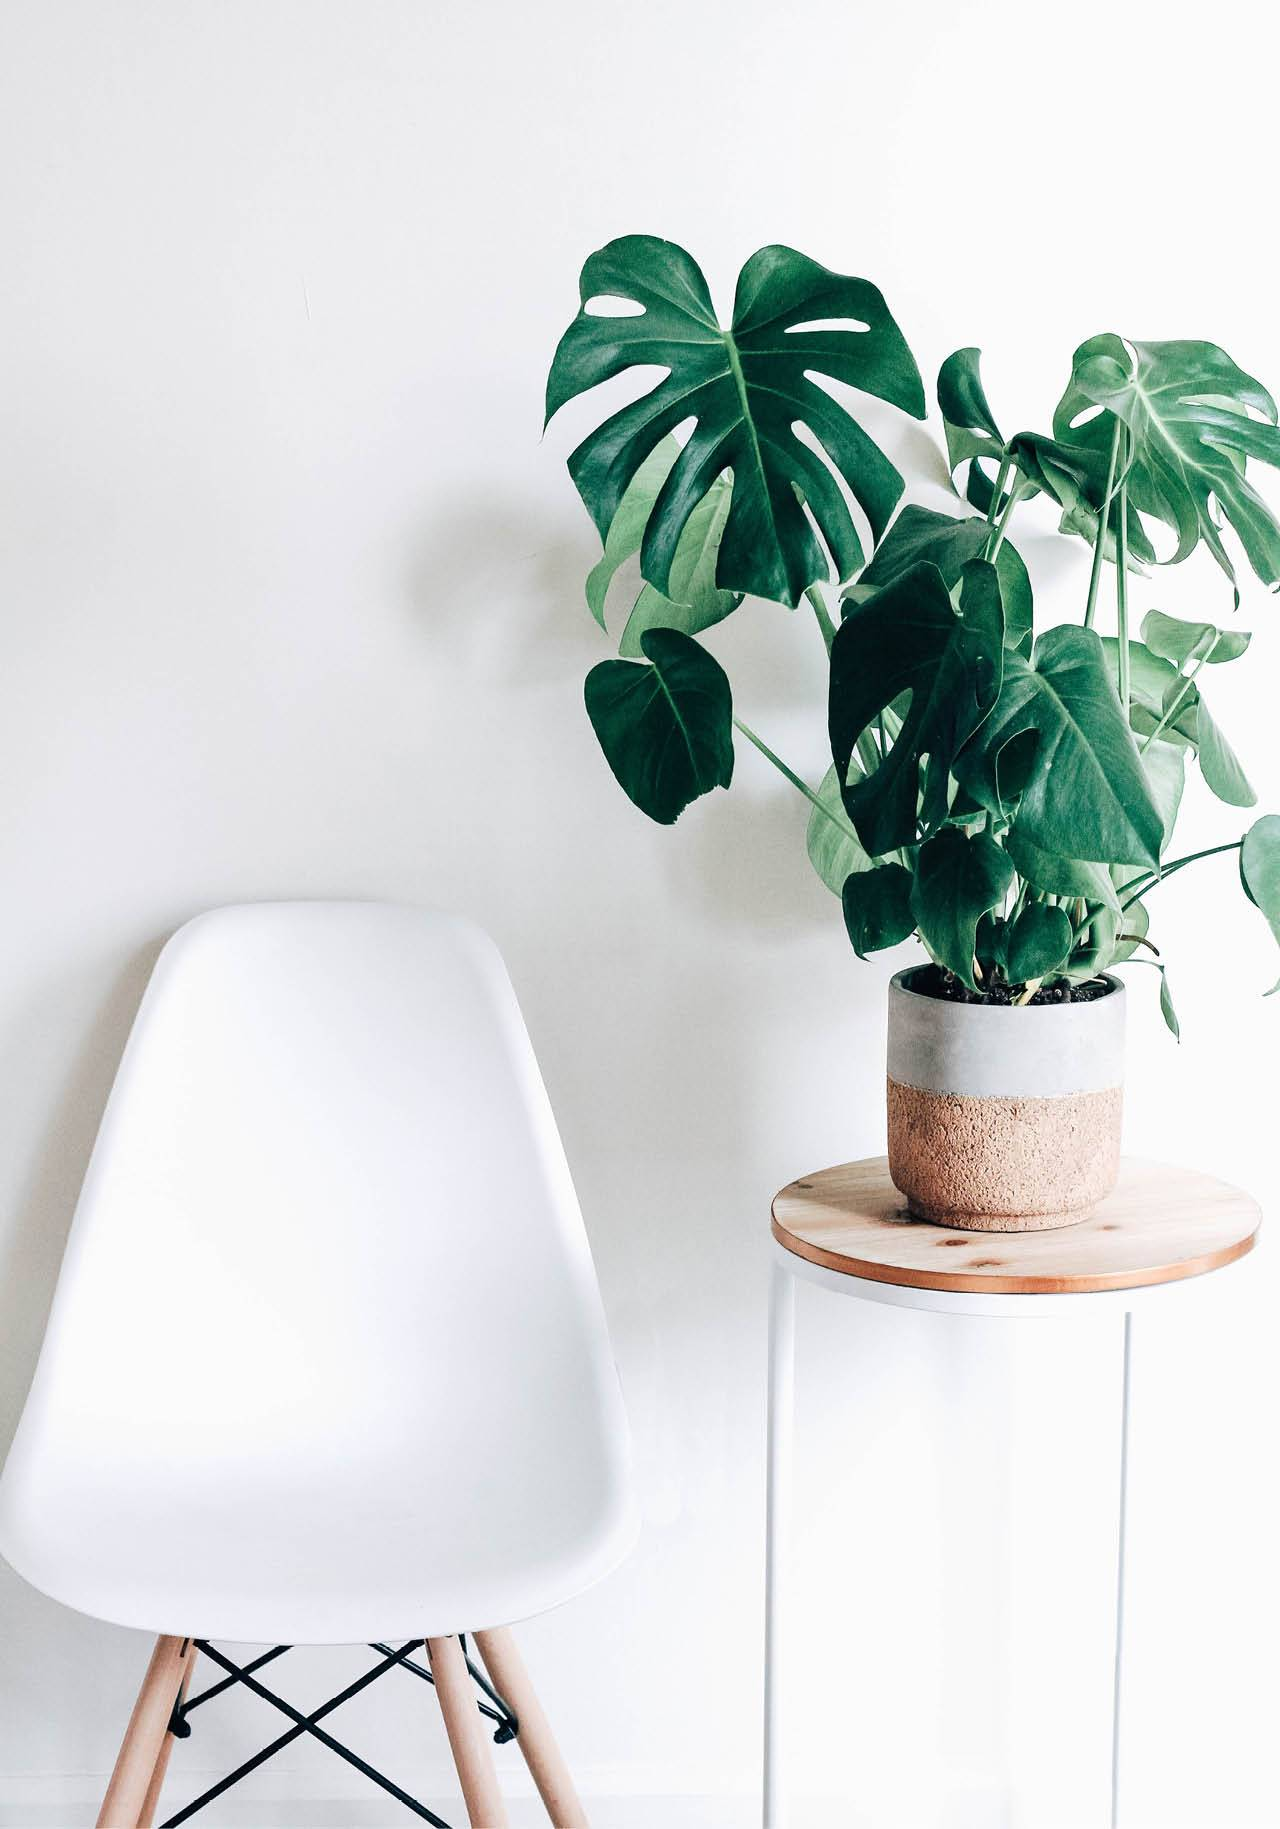 plantas de interior poca luz monstera